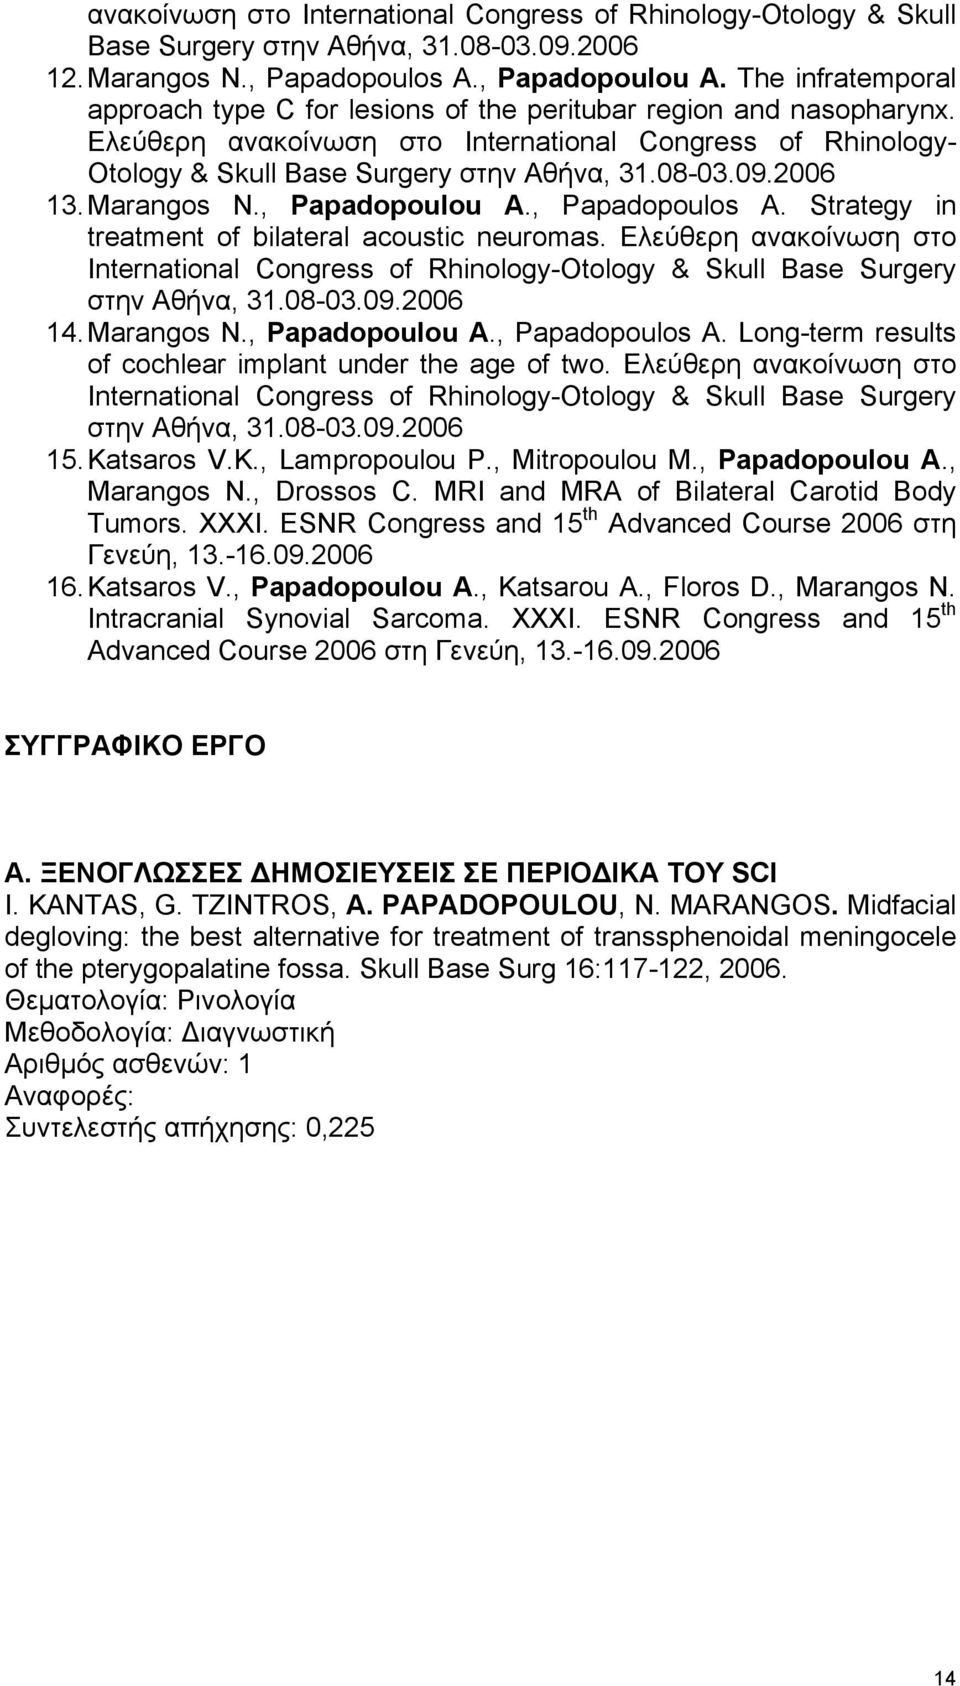 09.2006 13. Marangos N., Papadopoulou A., Papadopoulos A. Strategy in treatment of bilateral acoustic neuromas.